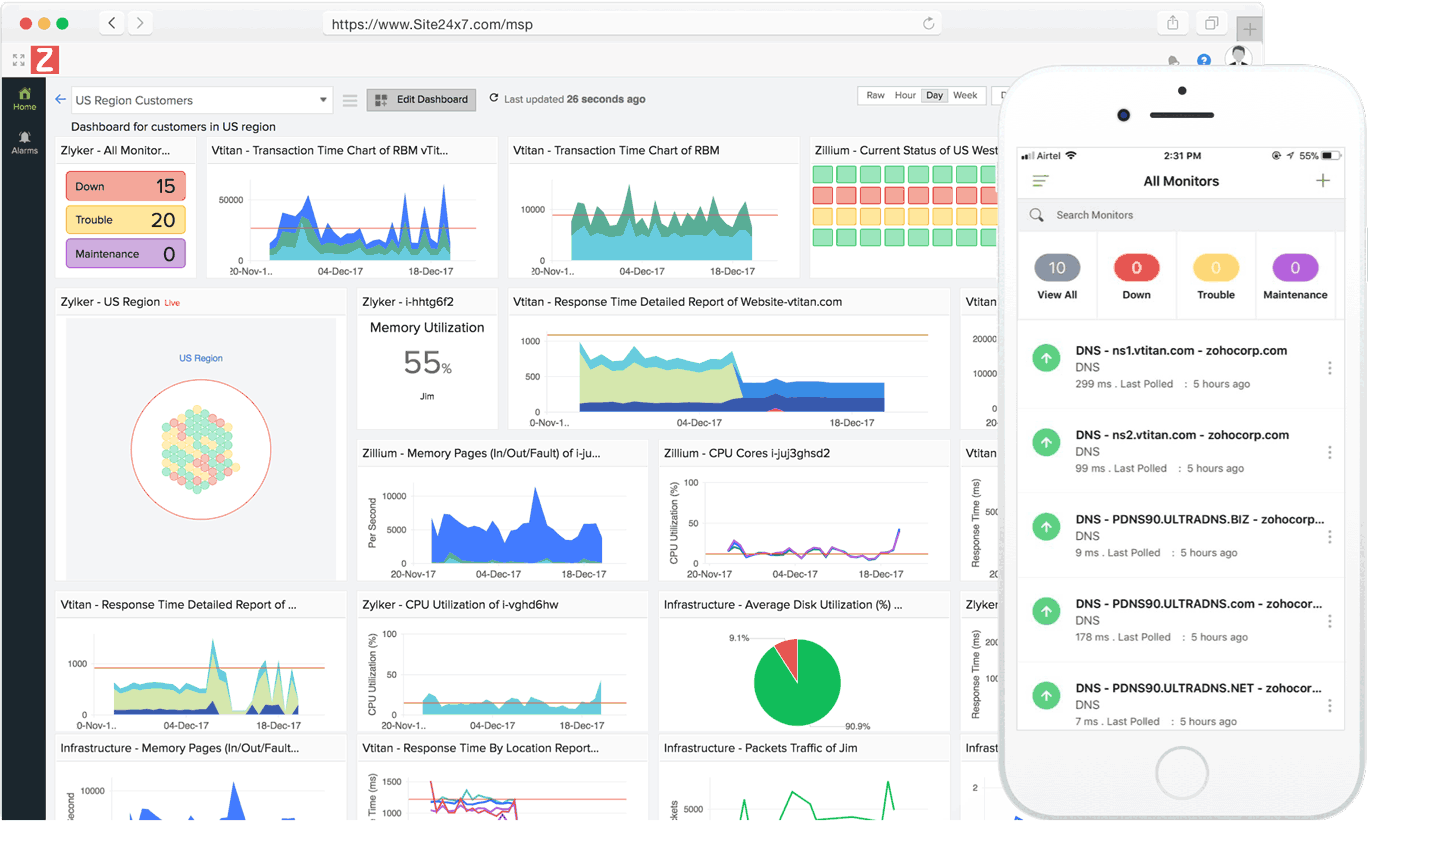 Custom dashboard displaying time series charts for CPU, memory usage, response time, and other metrics